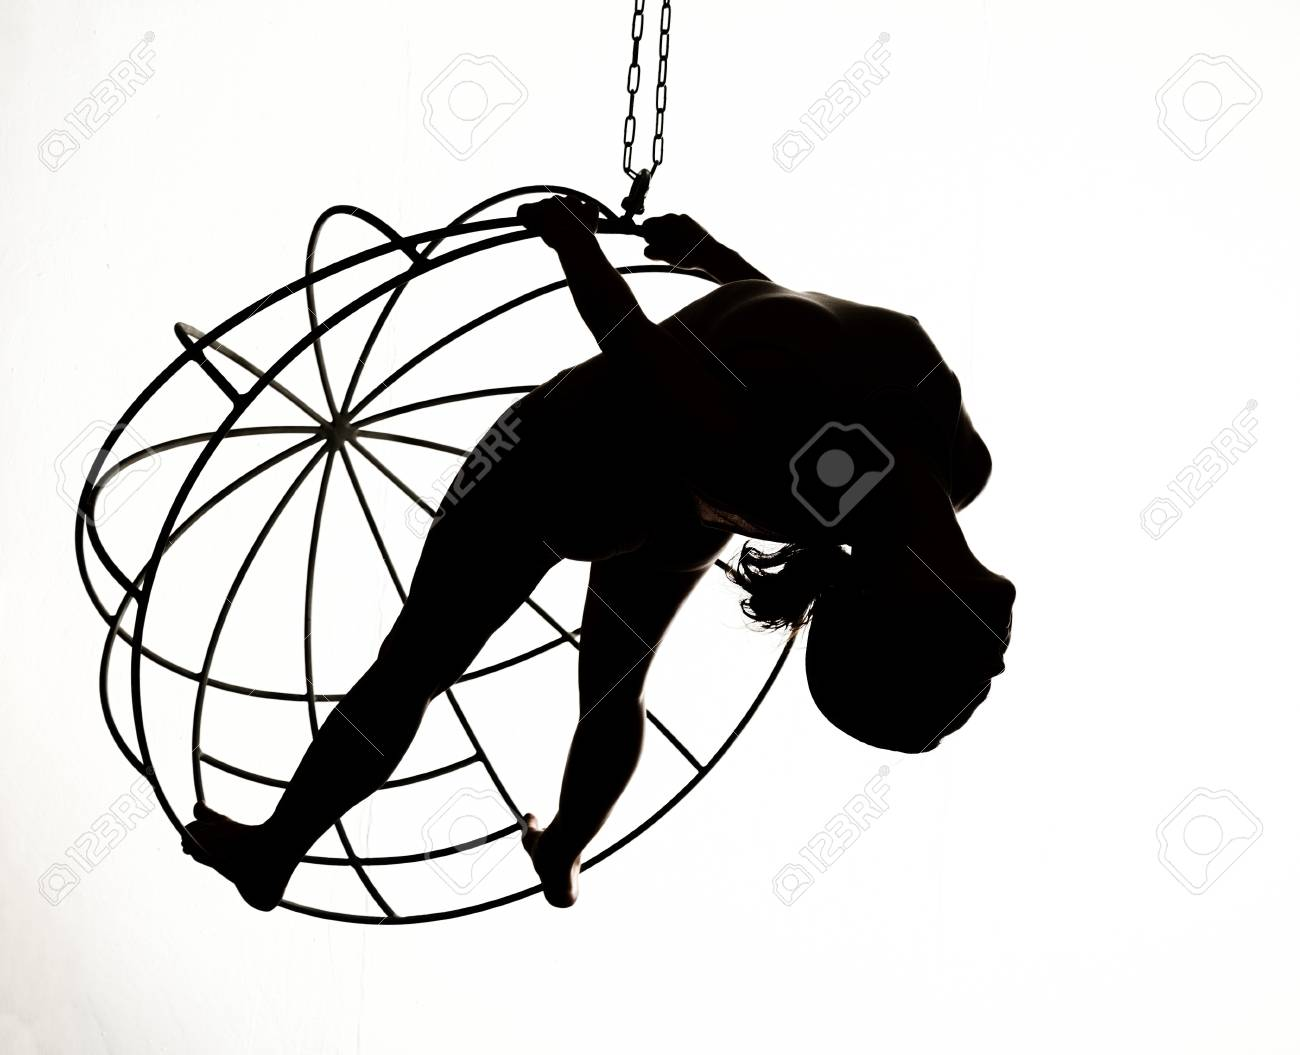 Silhouette of a sexy woman on a metal swing, black and white Stock Photo -